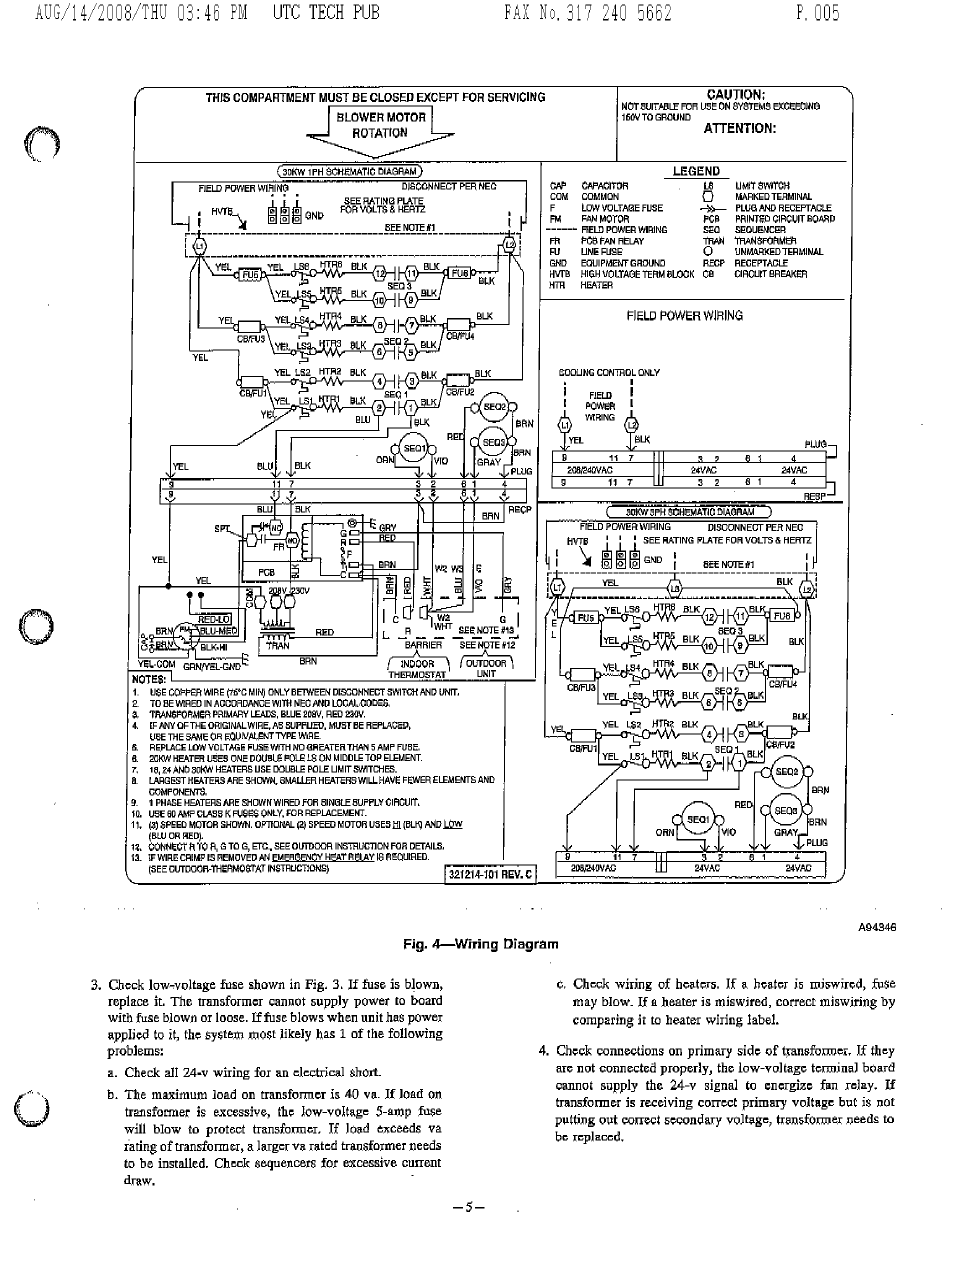 Pig  4 U2014 Wiring Diagram  Utc Tech Pub